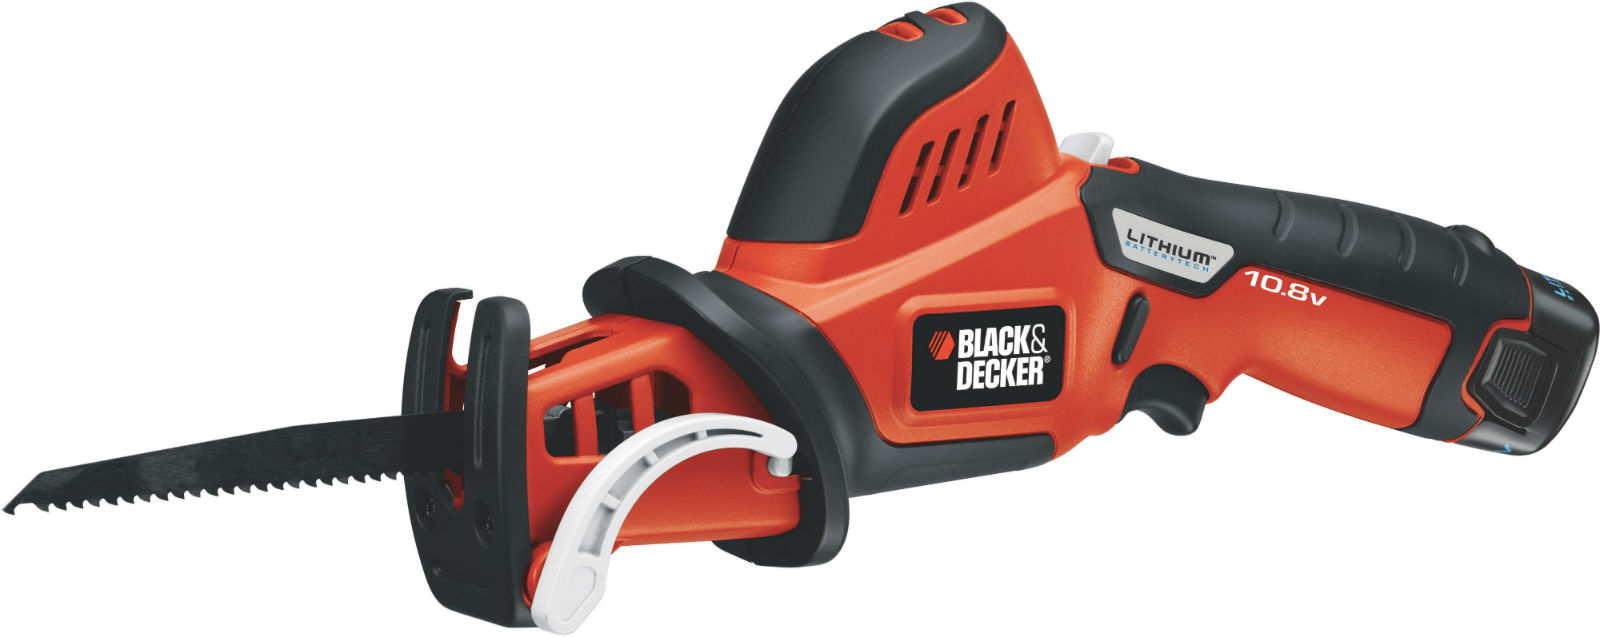 BLACK and DECKER GKC108 aku mečová pila